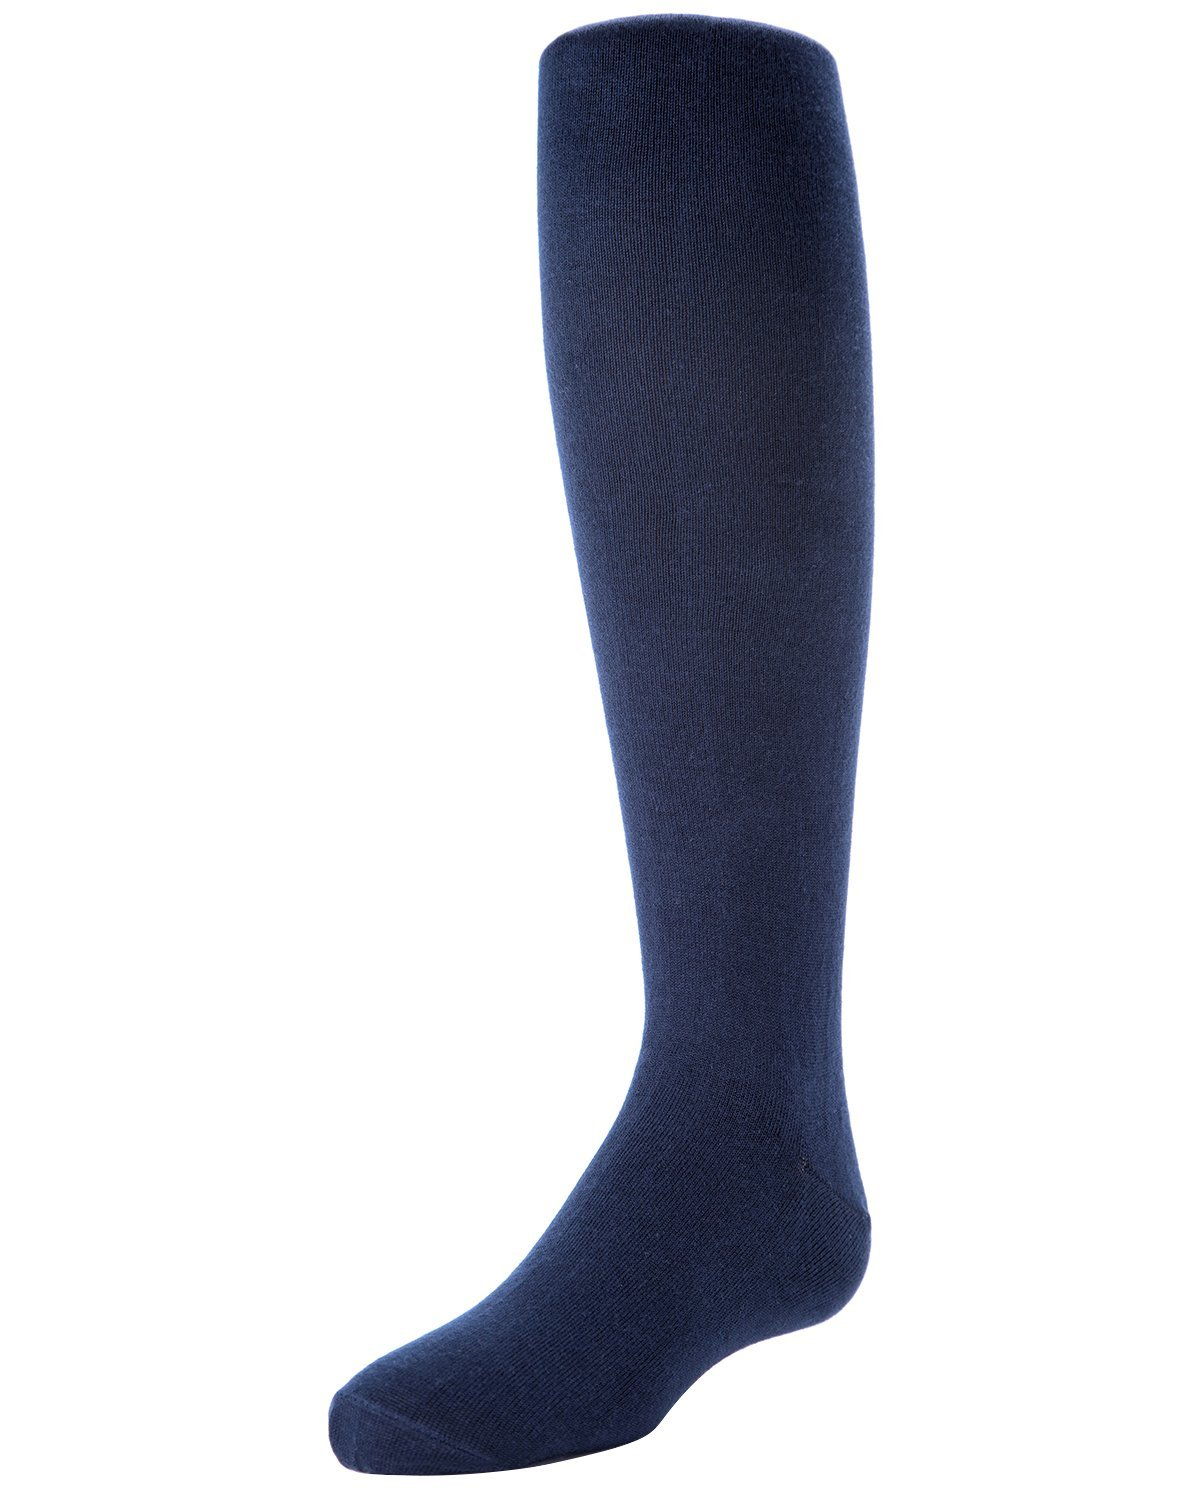 MeMoi Cotton Tights for Girls | Cotton Sweater Tights by MeMoi 4 / Navy MK 311